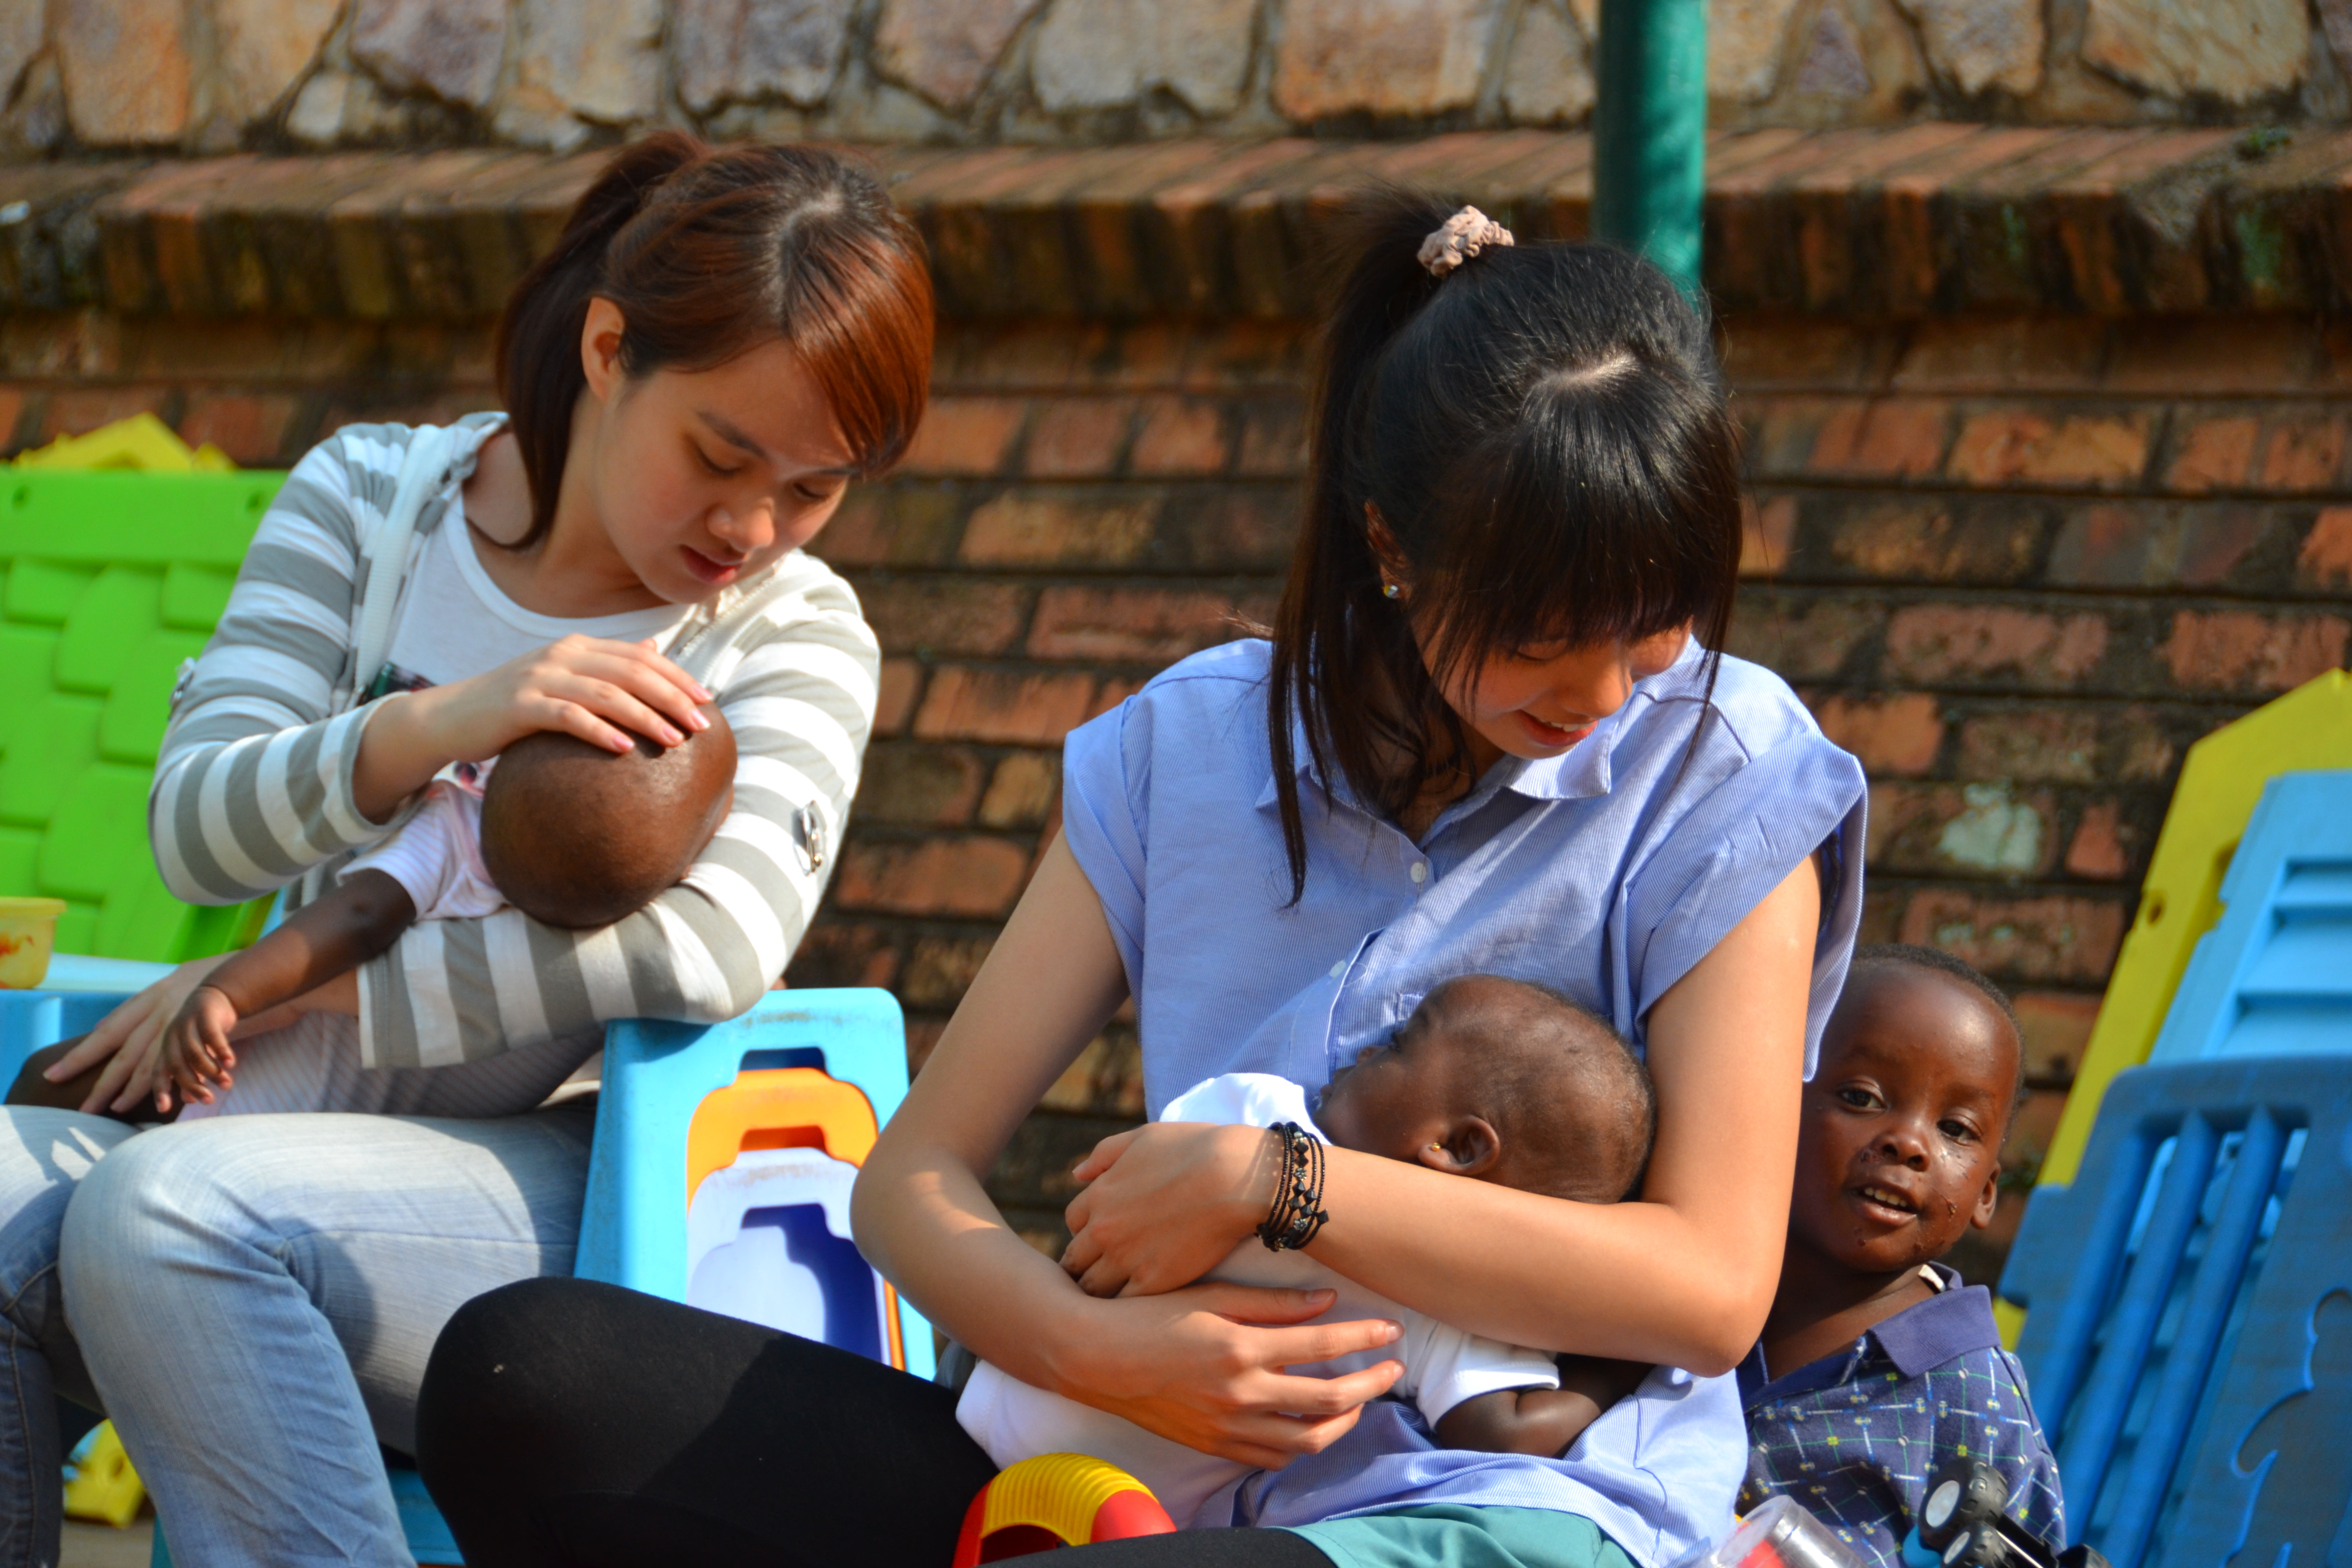 The students help to feed babies at the babies' homes.